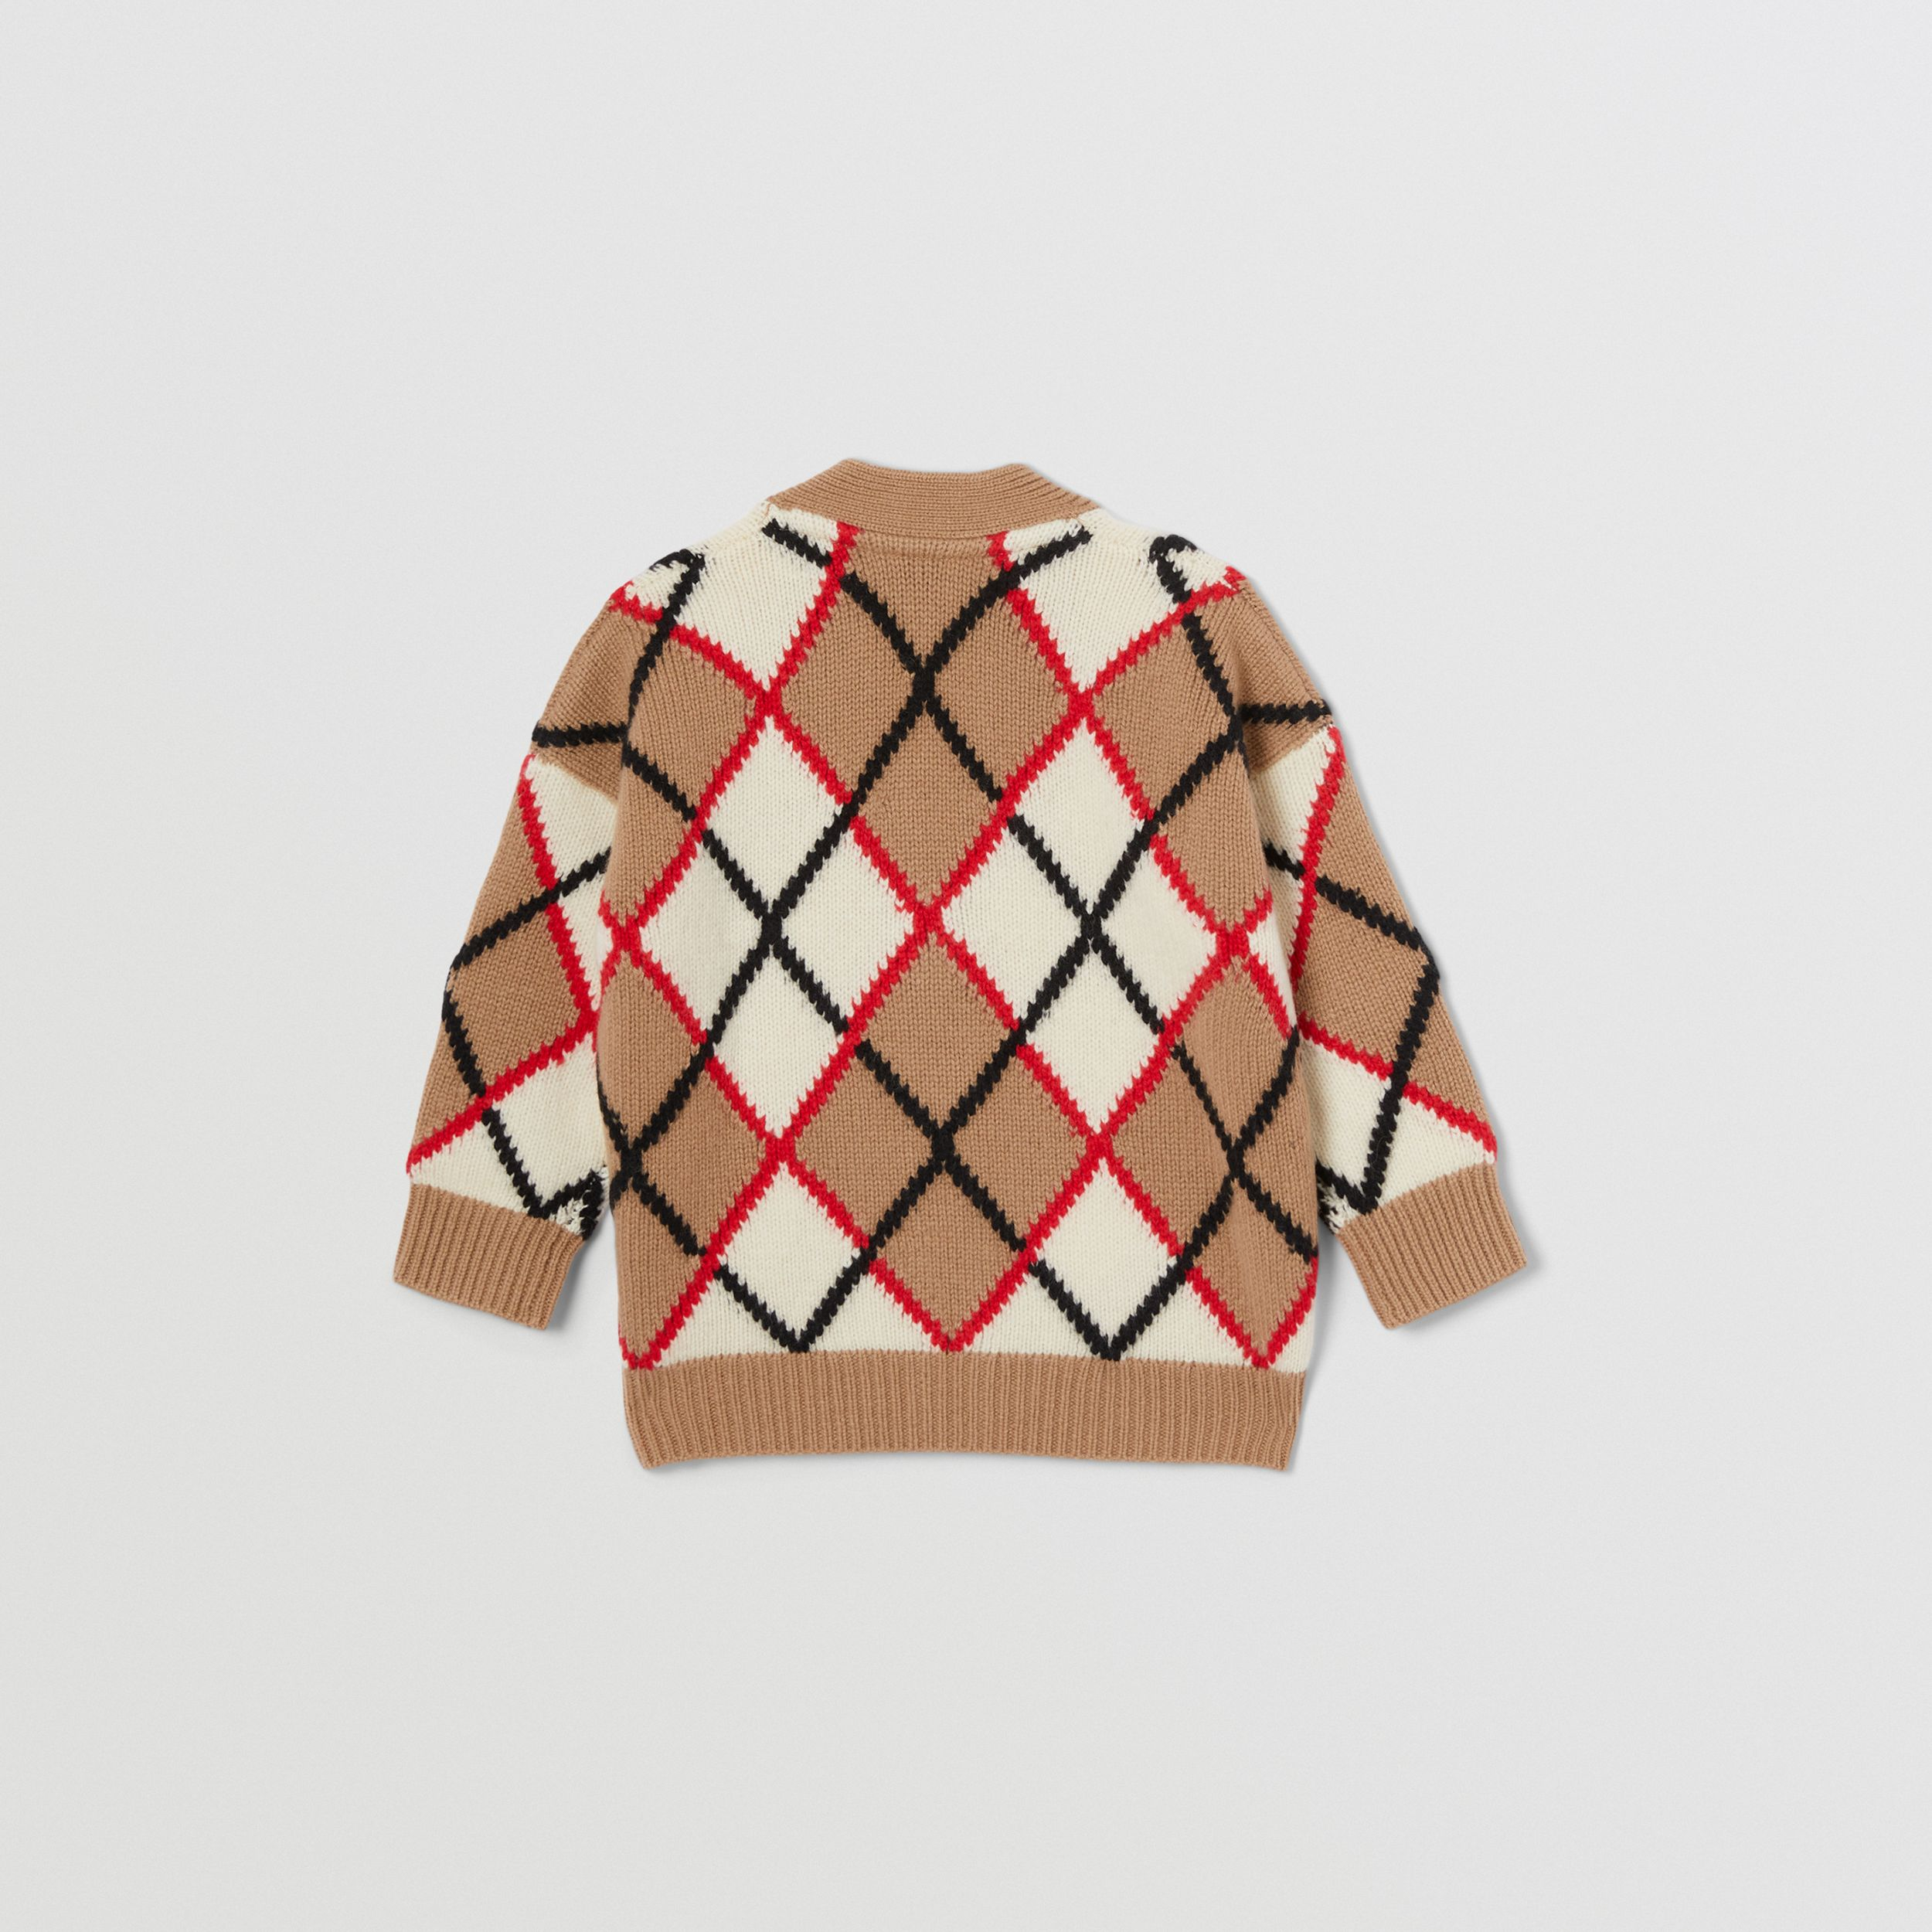 Argyle Intarsia Wool Cashmere Cardigan in Camel - Children | Burberry - 3